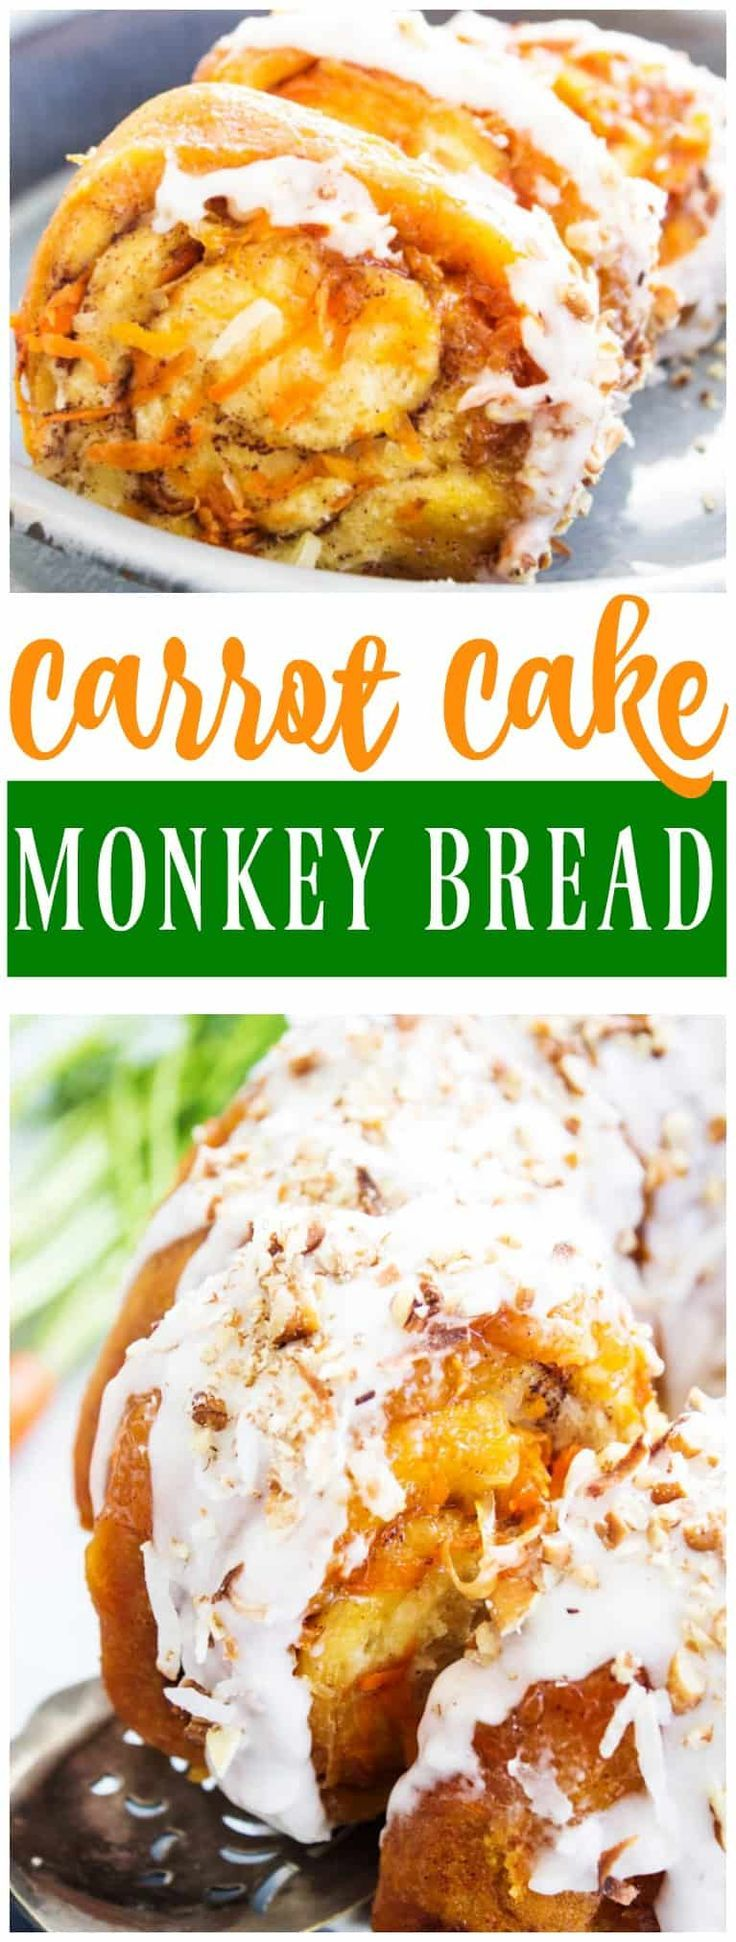 Insanely delicious this CARROT CAKE MONKEY BREAD is so easy and loaded with shredded carrots, coconut, pecans and drizzled with cream cheese frosting. #carrotcake #monkeybread  #PillsburySpringBaking #ad @walmart